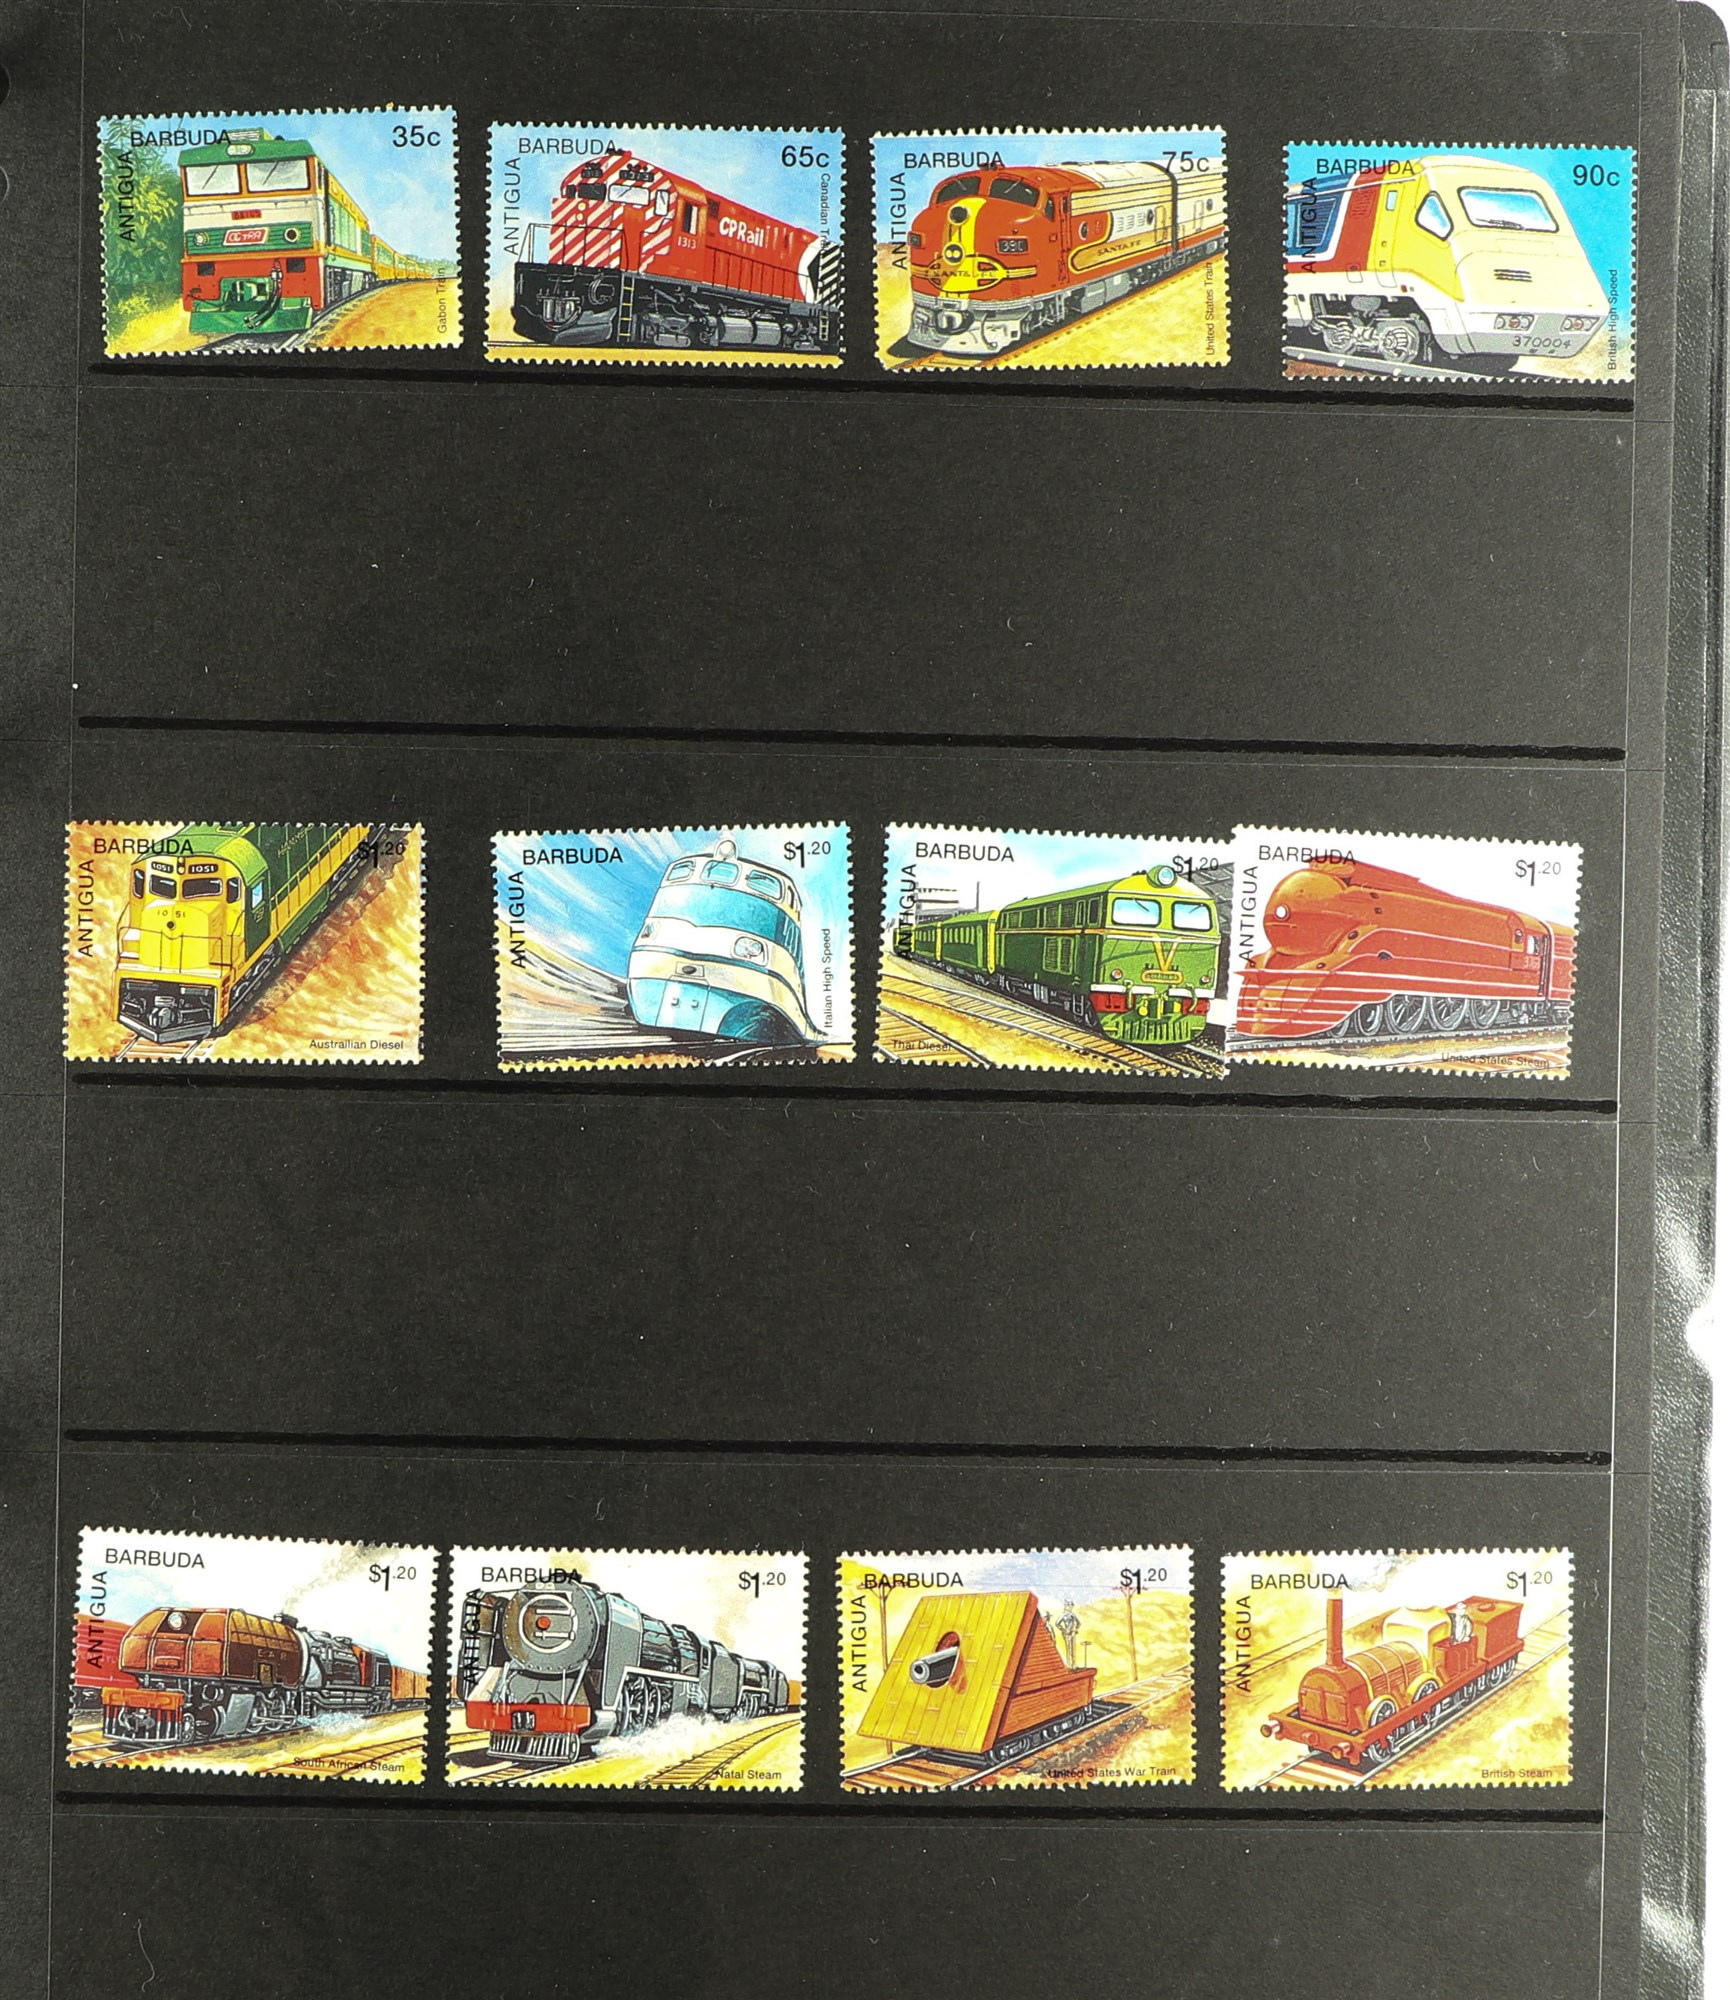 COLLECTIONS & ACCUMULATIONS RAILWAY & TRAINS ON STAMPS TOPICAL COLLECTION in six albums, early to - Image 5 of 7